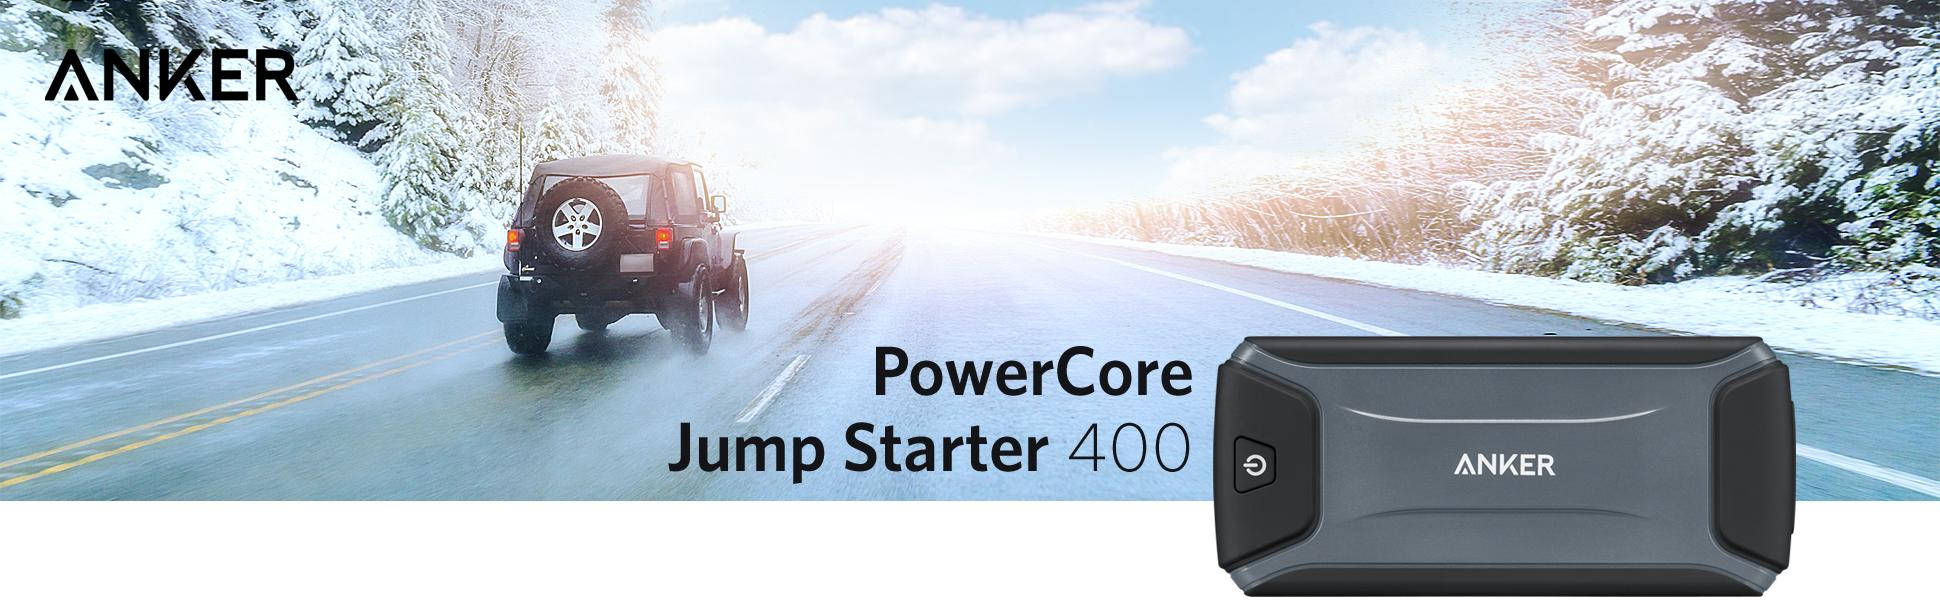 Anker Ultra Compact Car Jump Starter And Volvo D12 Wiring Harness From The Manufacturer